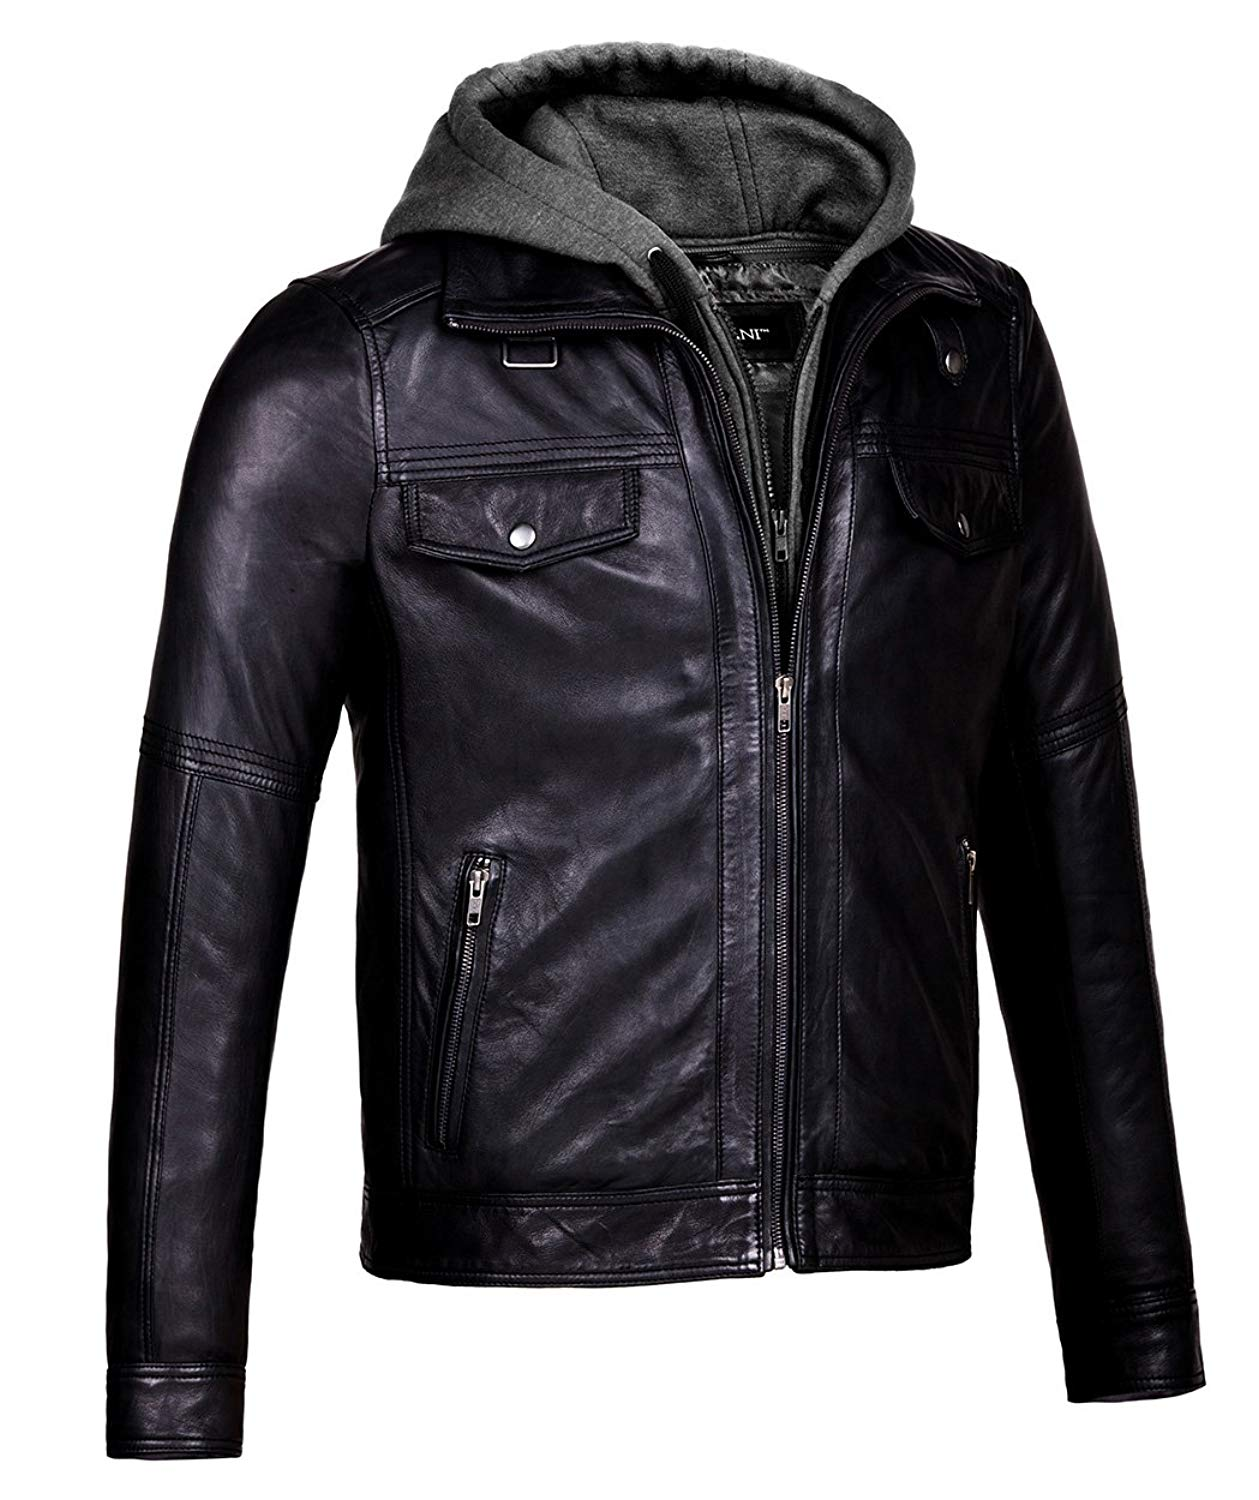 ZumZup Mens Bomber Jacket Pilot Jacket Faux Leather Gray Zipper